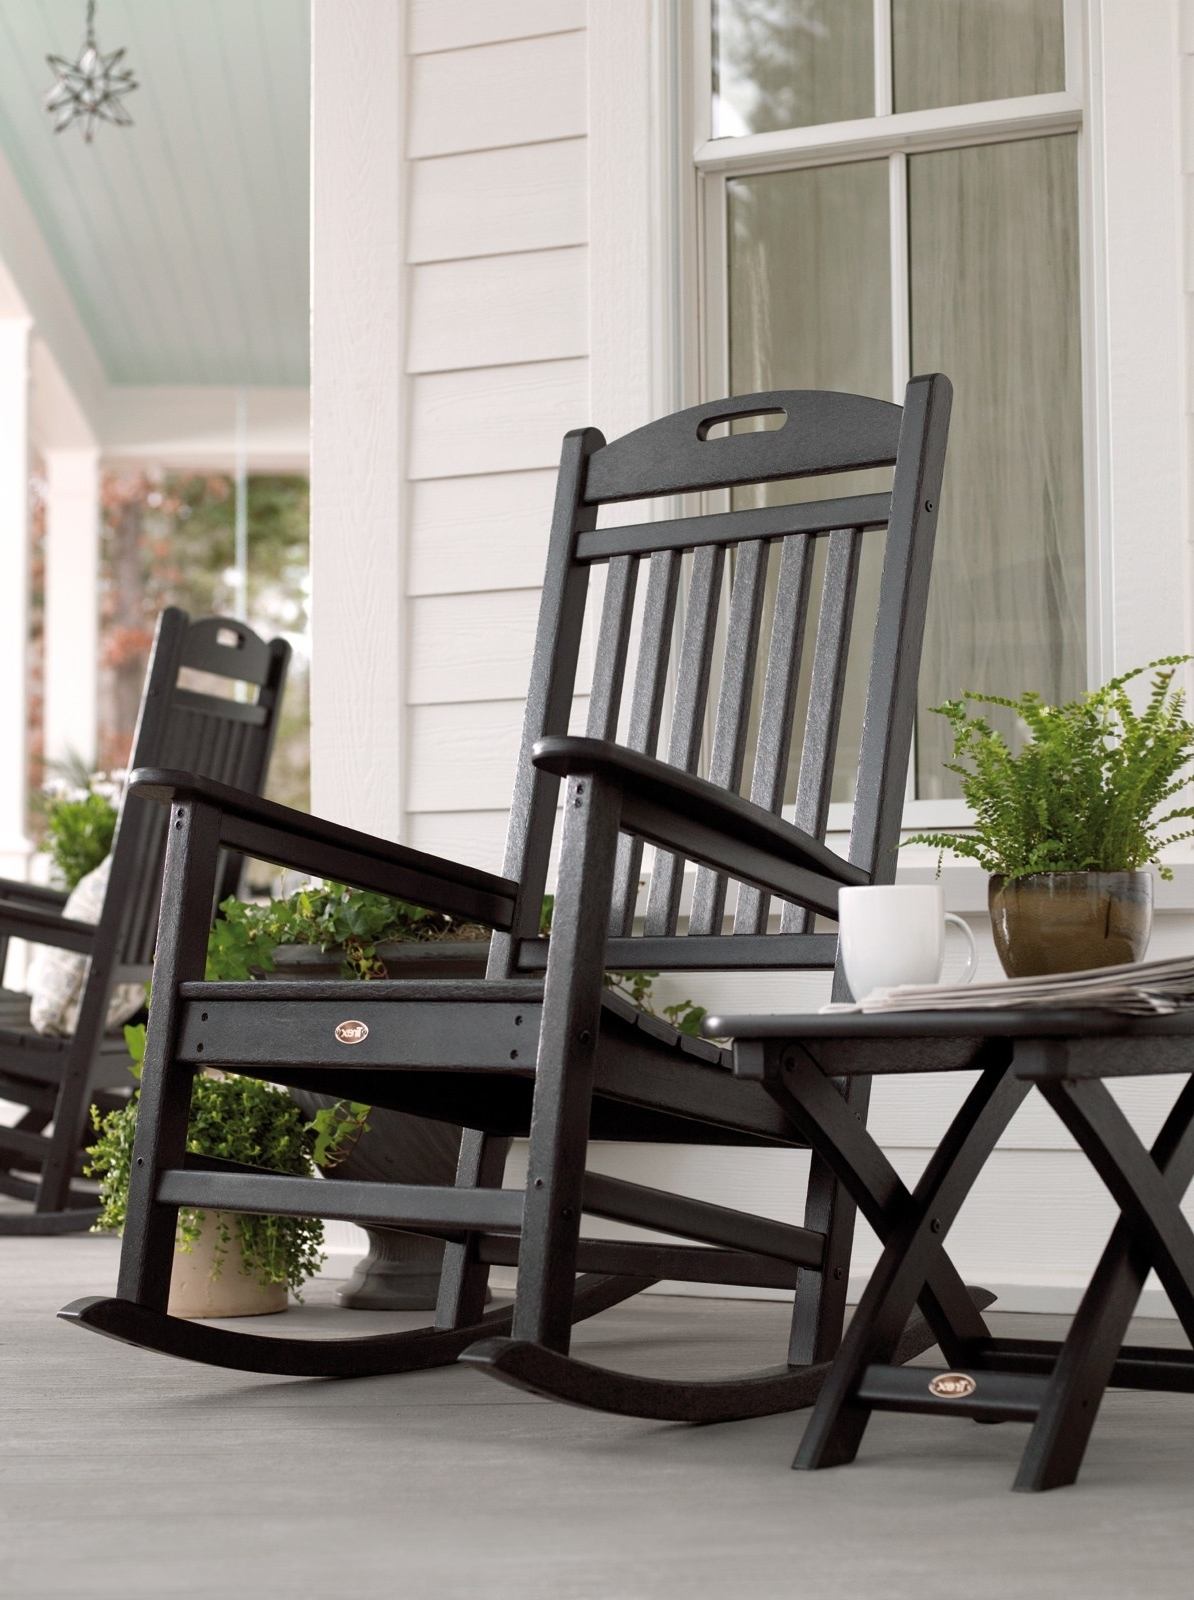 Most Recent Patio Rocking Chairs With Cushions Inside Patio & Garden : Outdoor Rocking Chair Seat Cushions Outdoor Rocking (View 7 of 20)